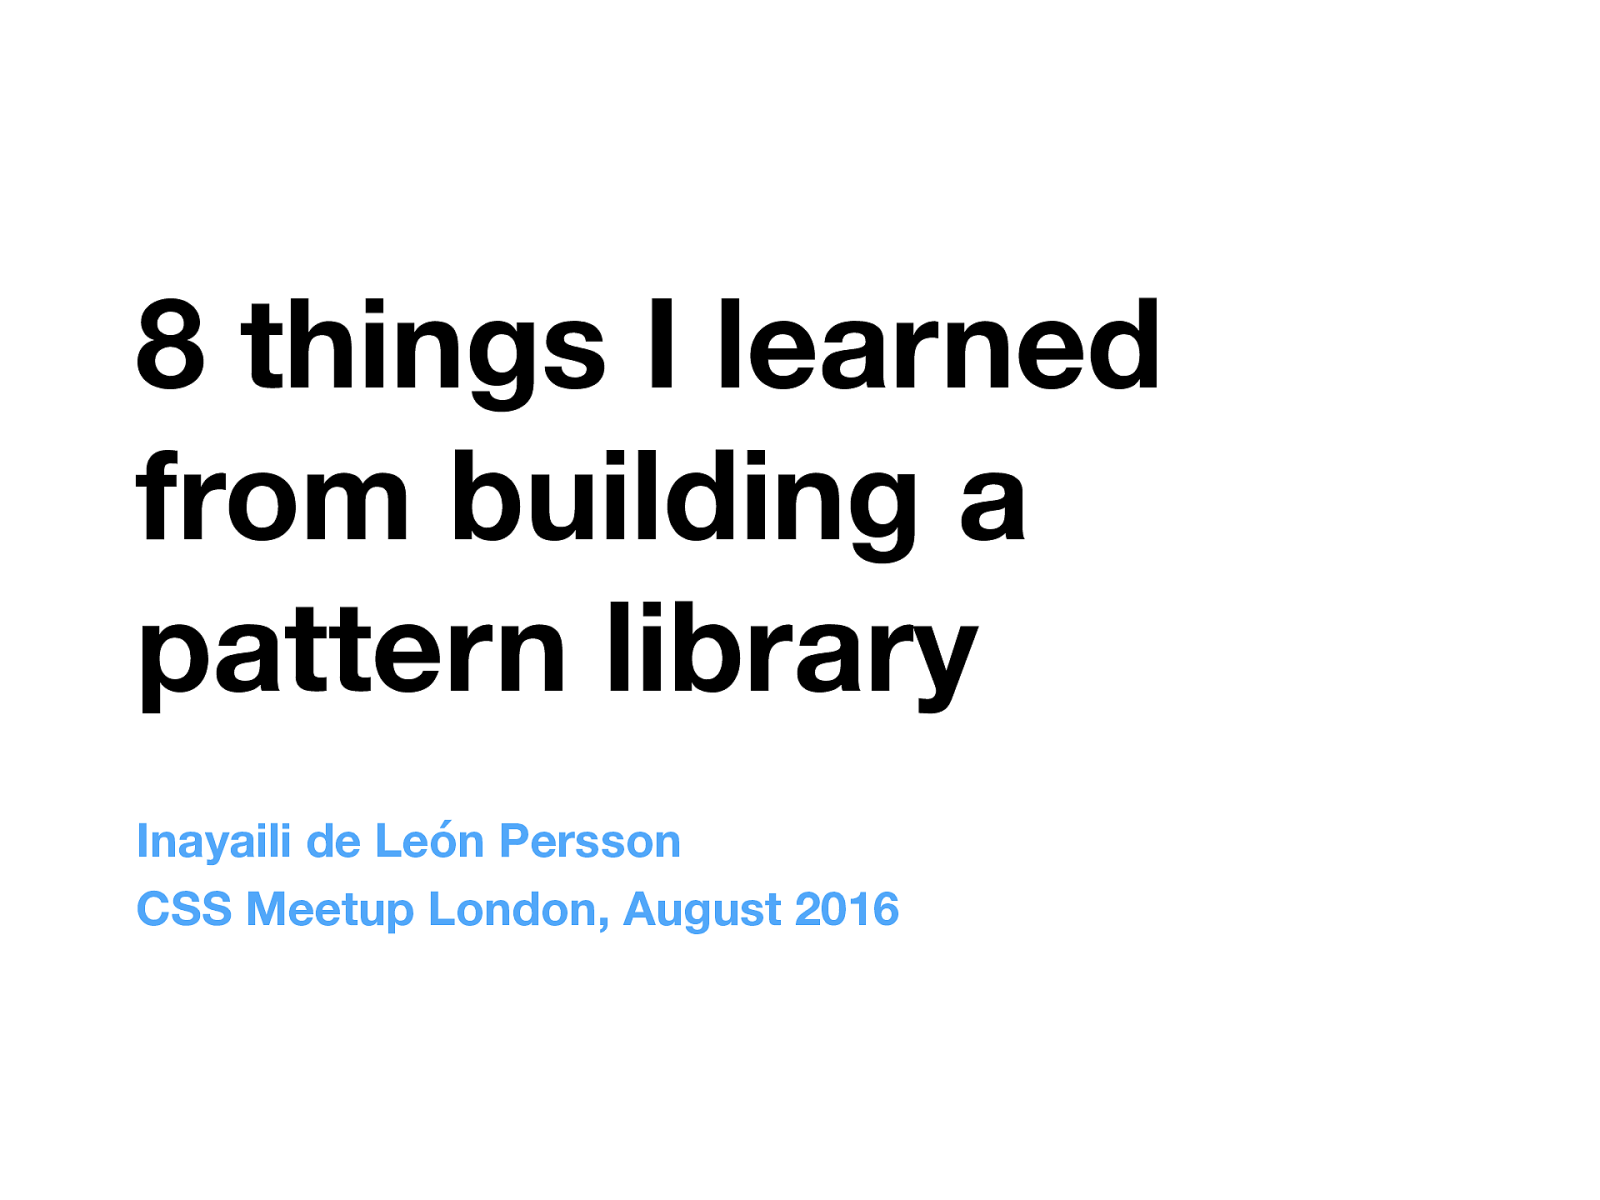 8 things I learned from building a pattern library